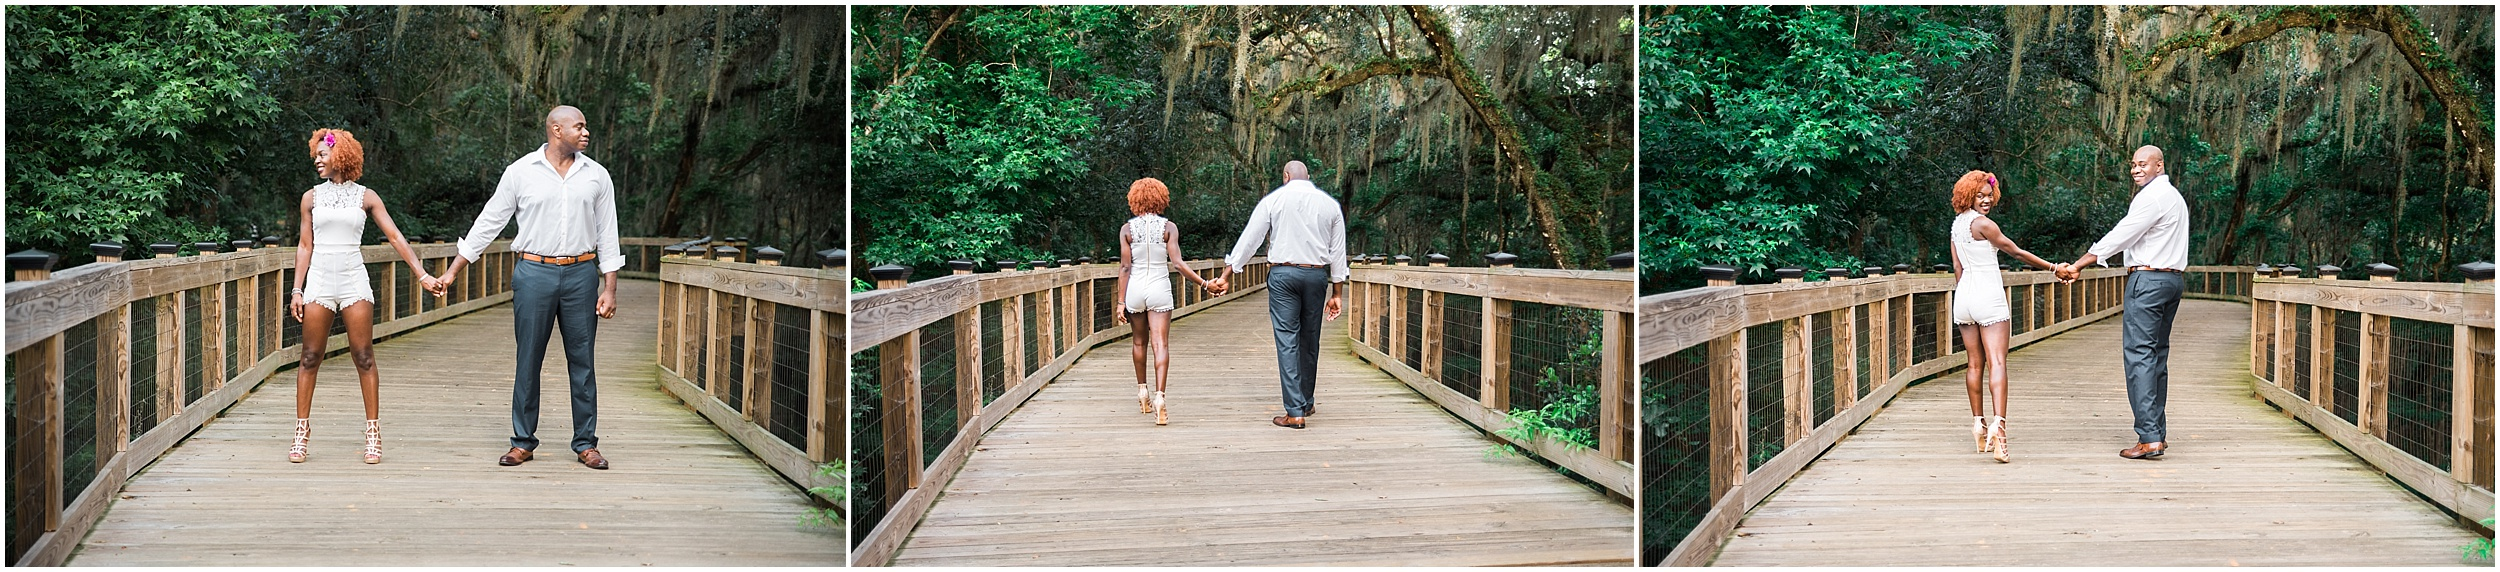 Kacy & Rolanda Vow Renewal at J.R Alford Greenway, Tallahassee FL_0012.jpg